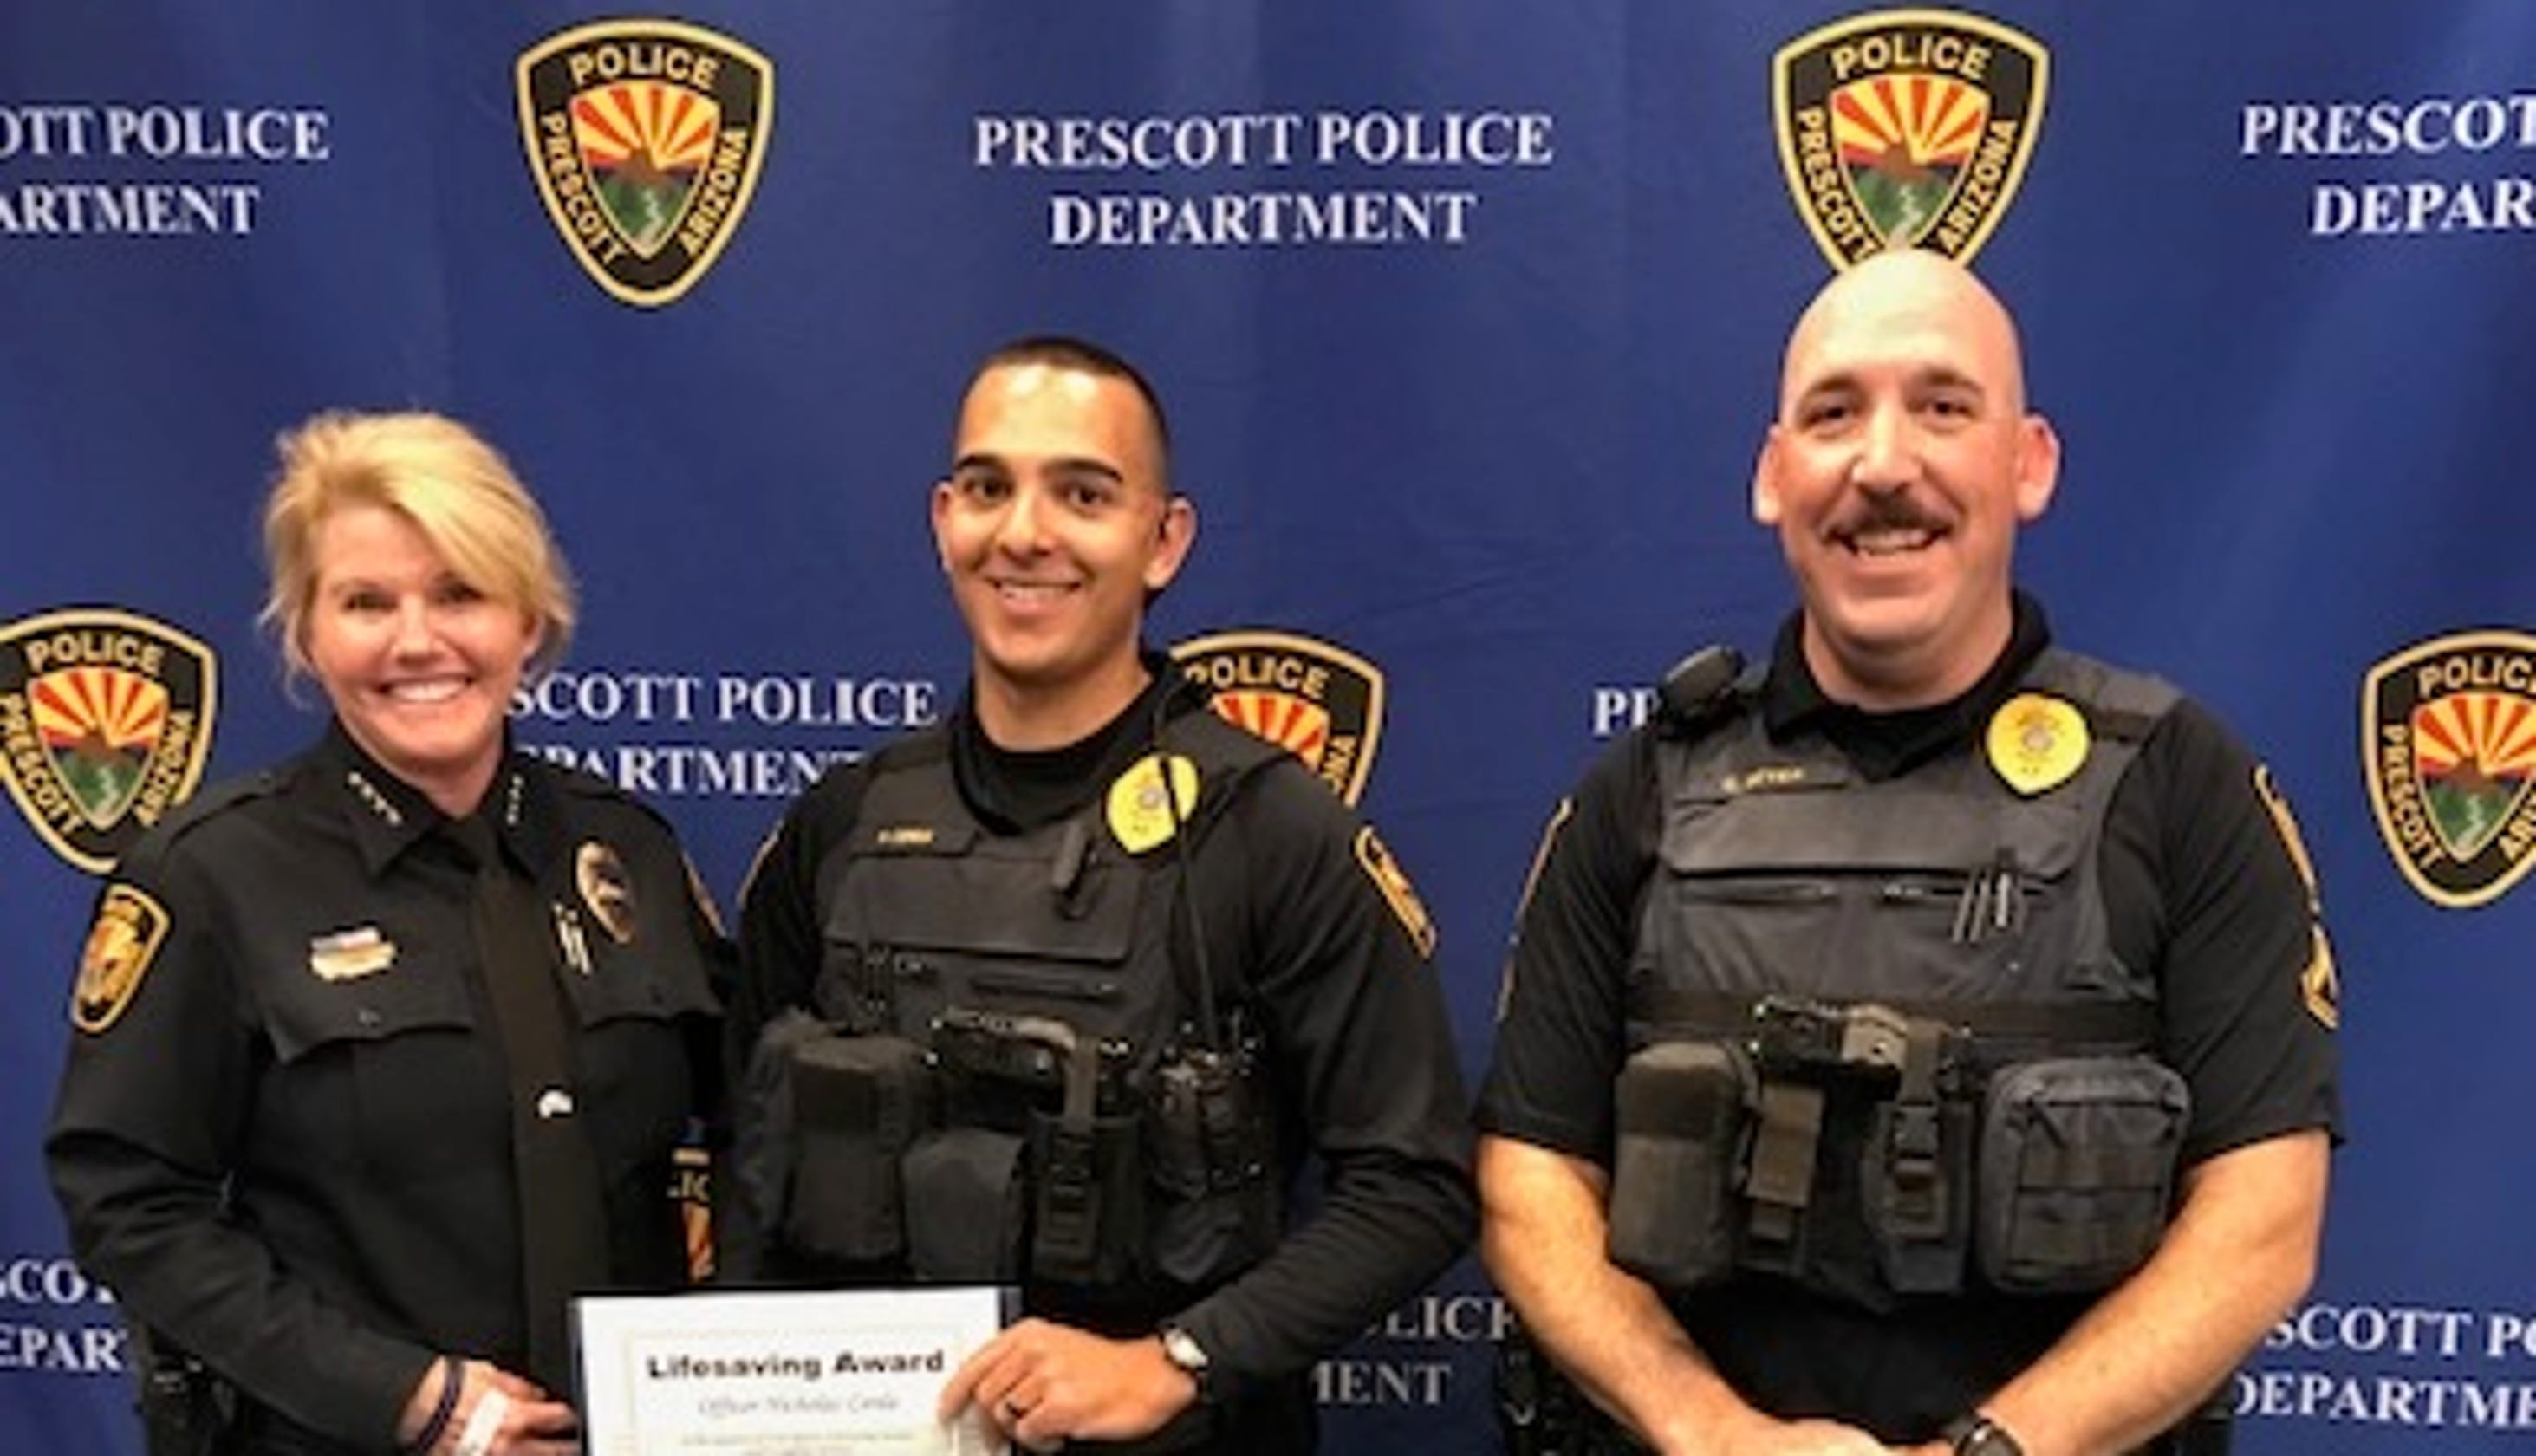 Officers Were Honored On Wednesday For Saving A Man's Life